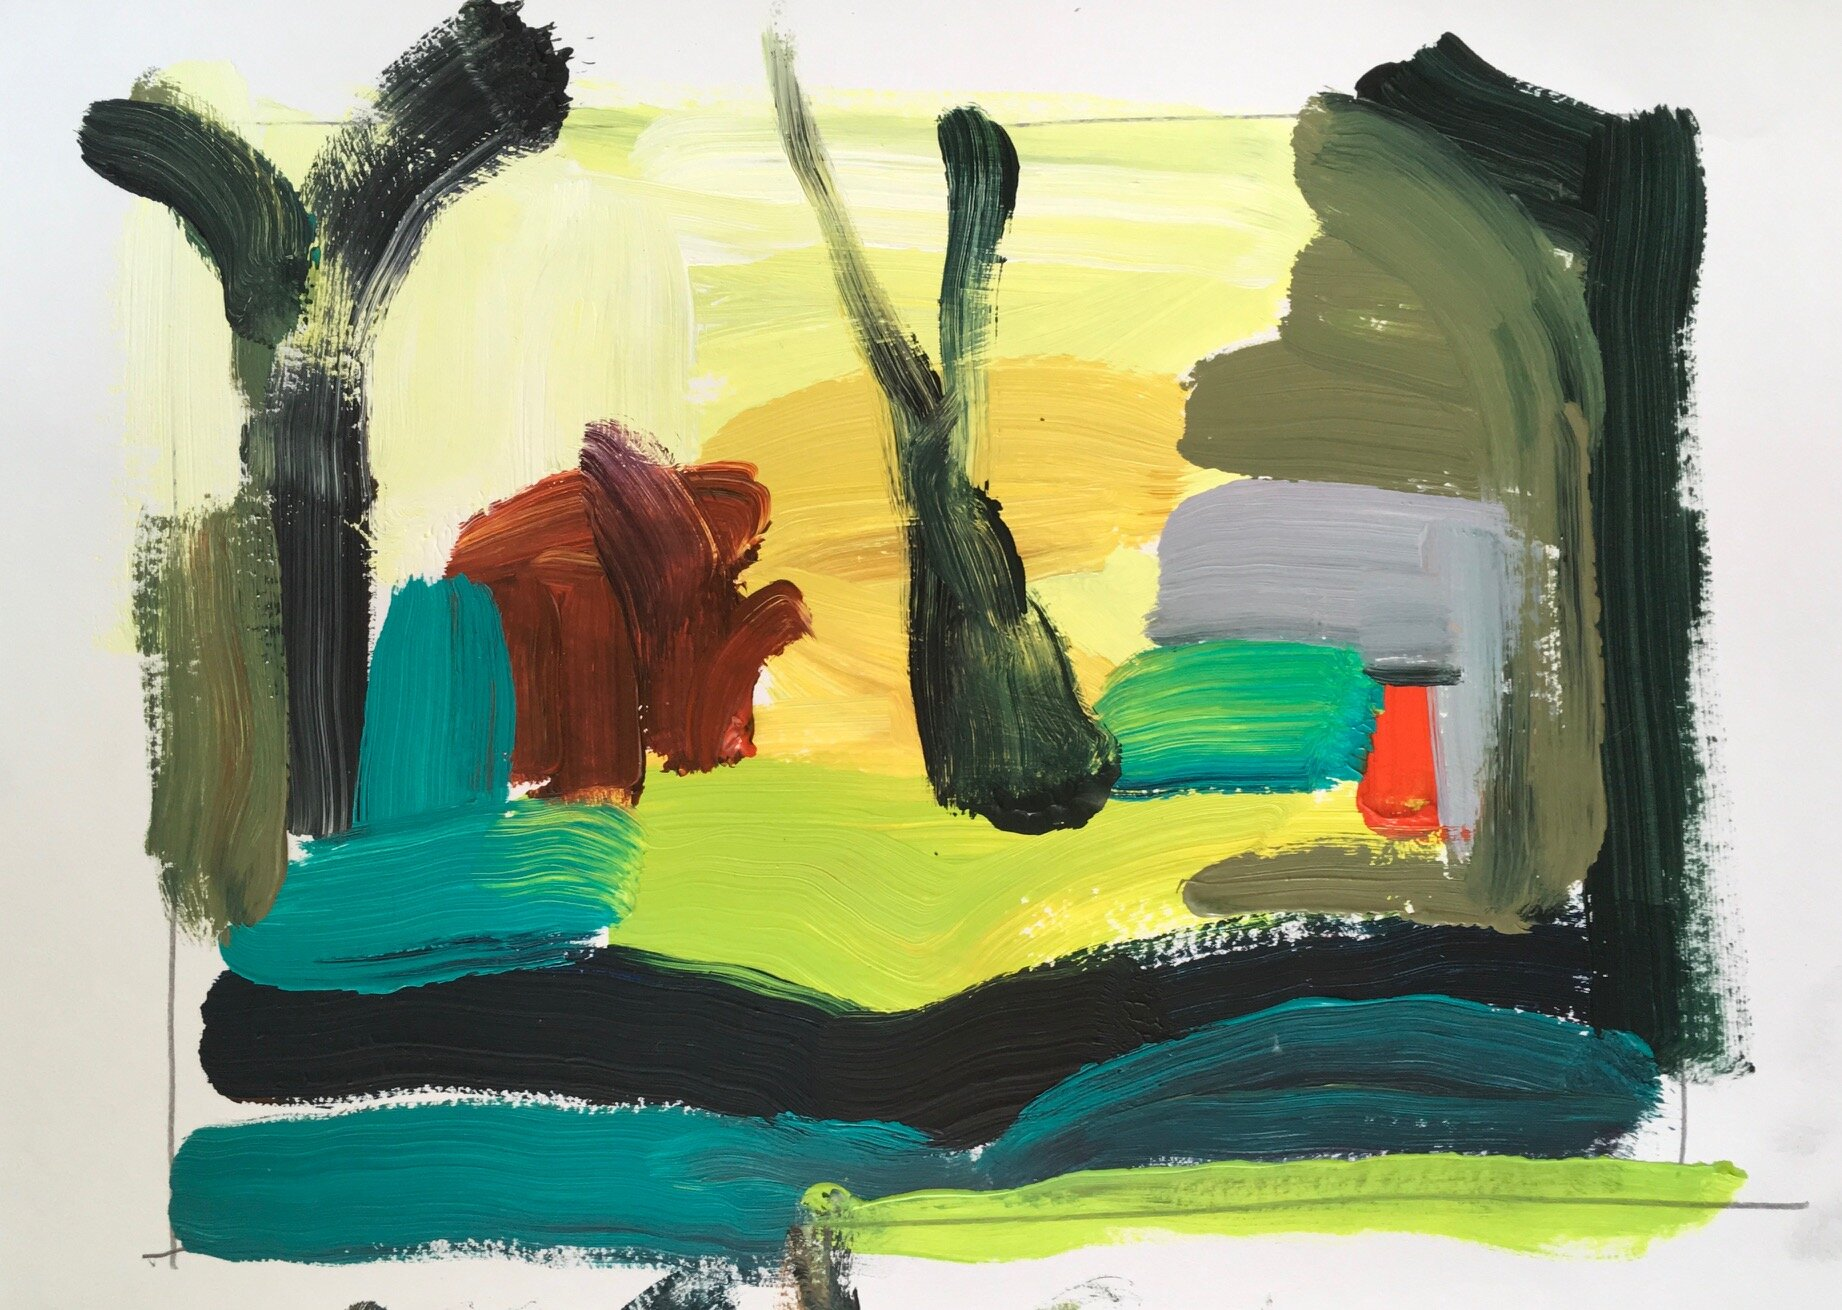 Artist: Kate Strachan  Title: Abstract Landscape  Size: 45 x 55 cm  Medium: Acrylic on paper  Price: £480